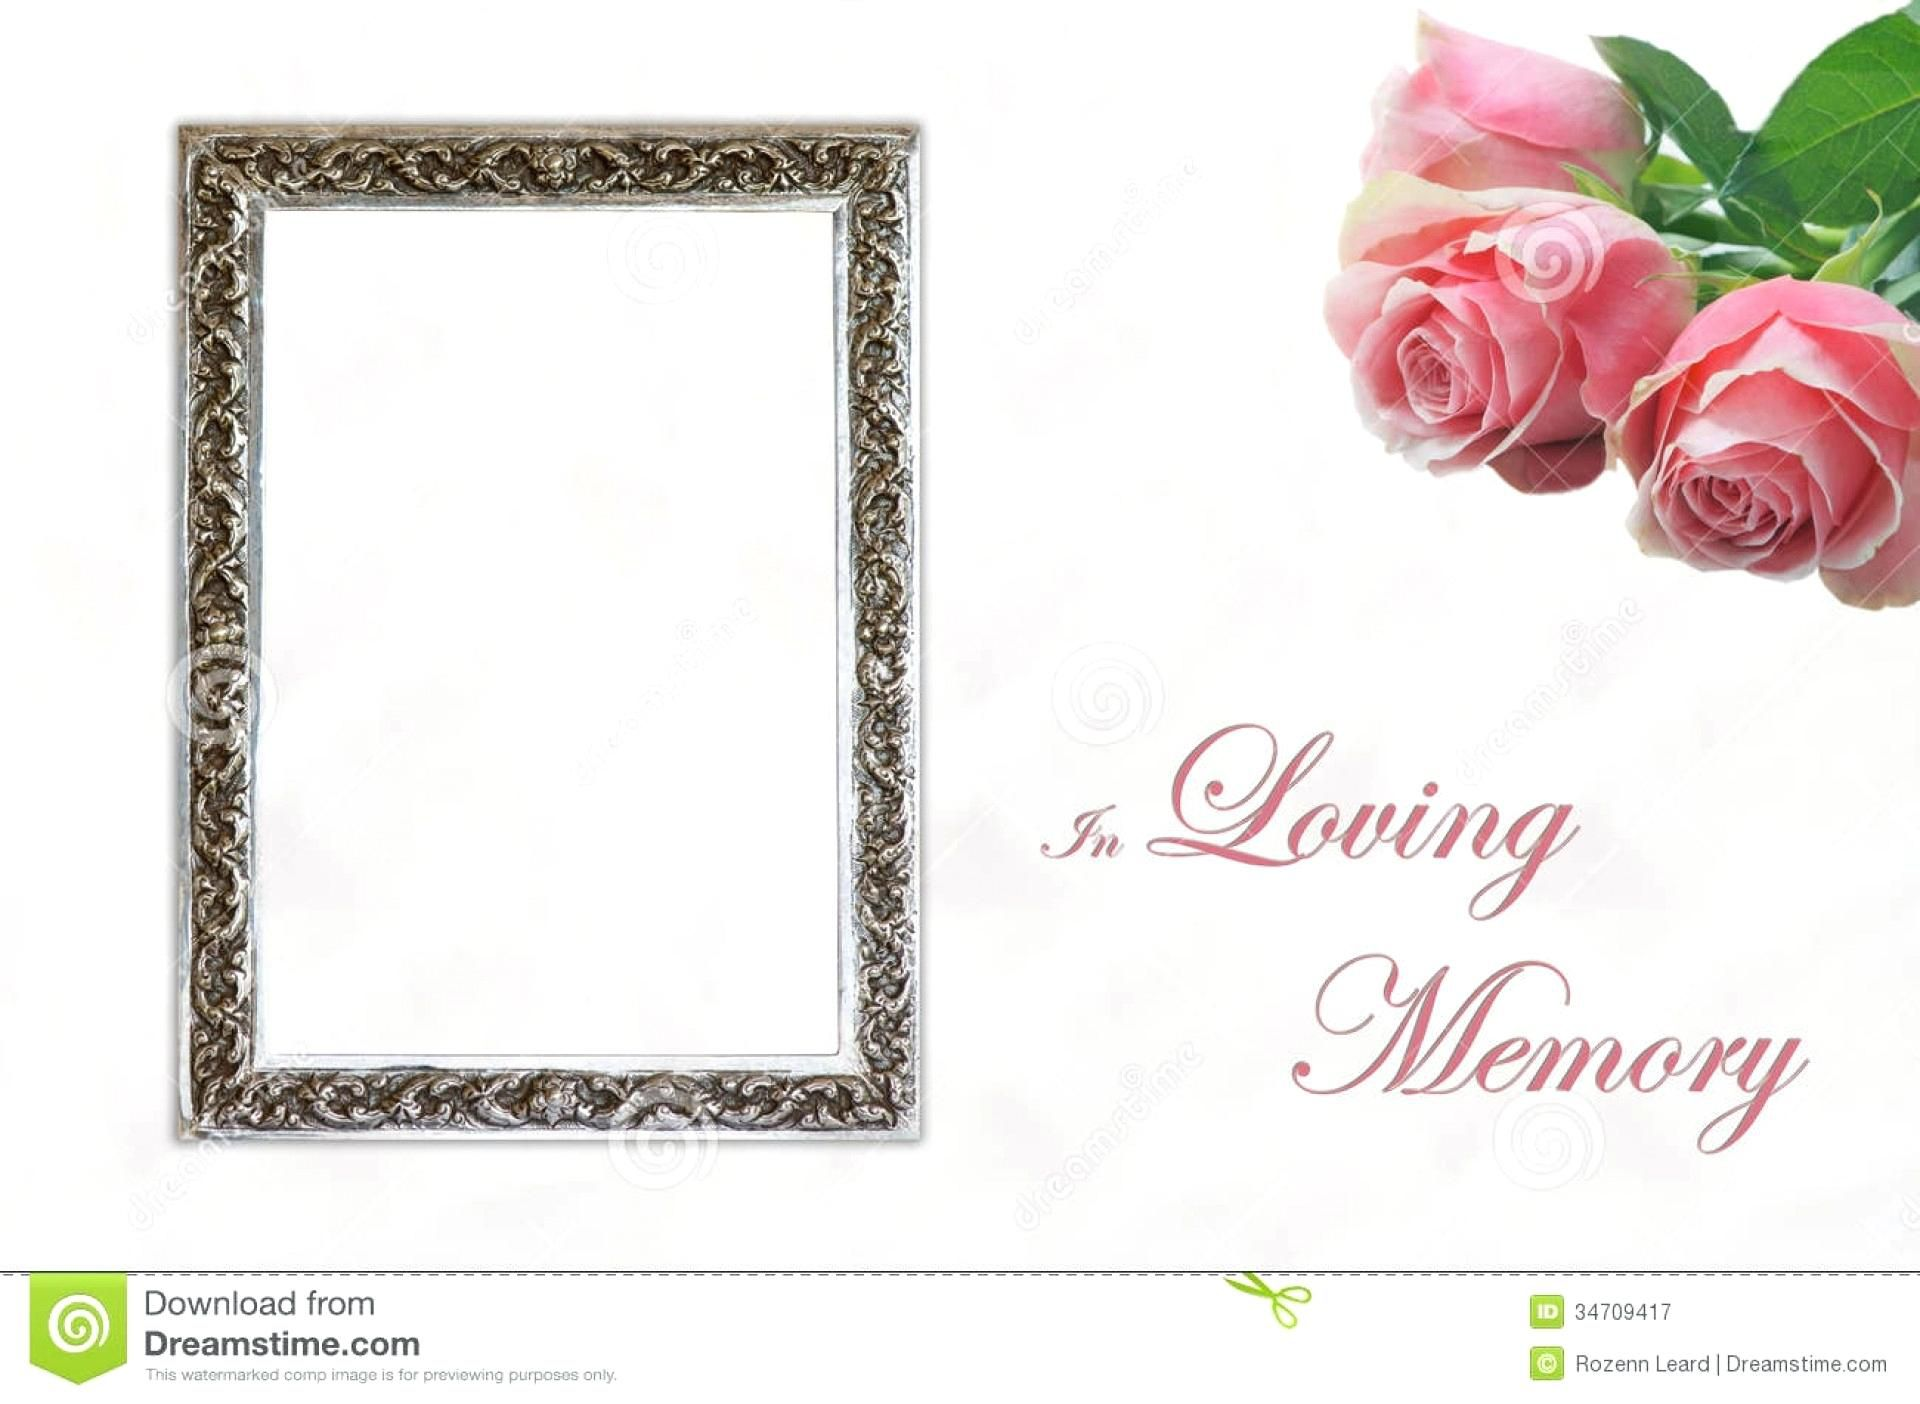 008 Excellent In Loving Memory Template Idea  Templates WordFull